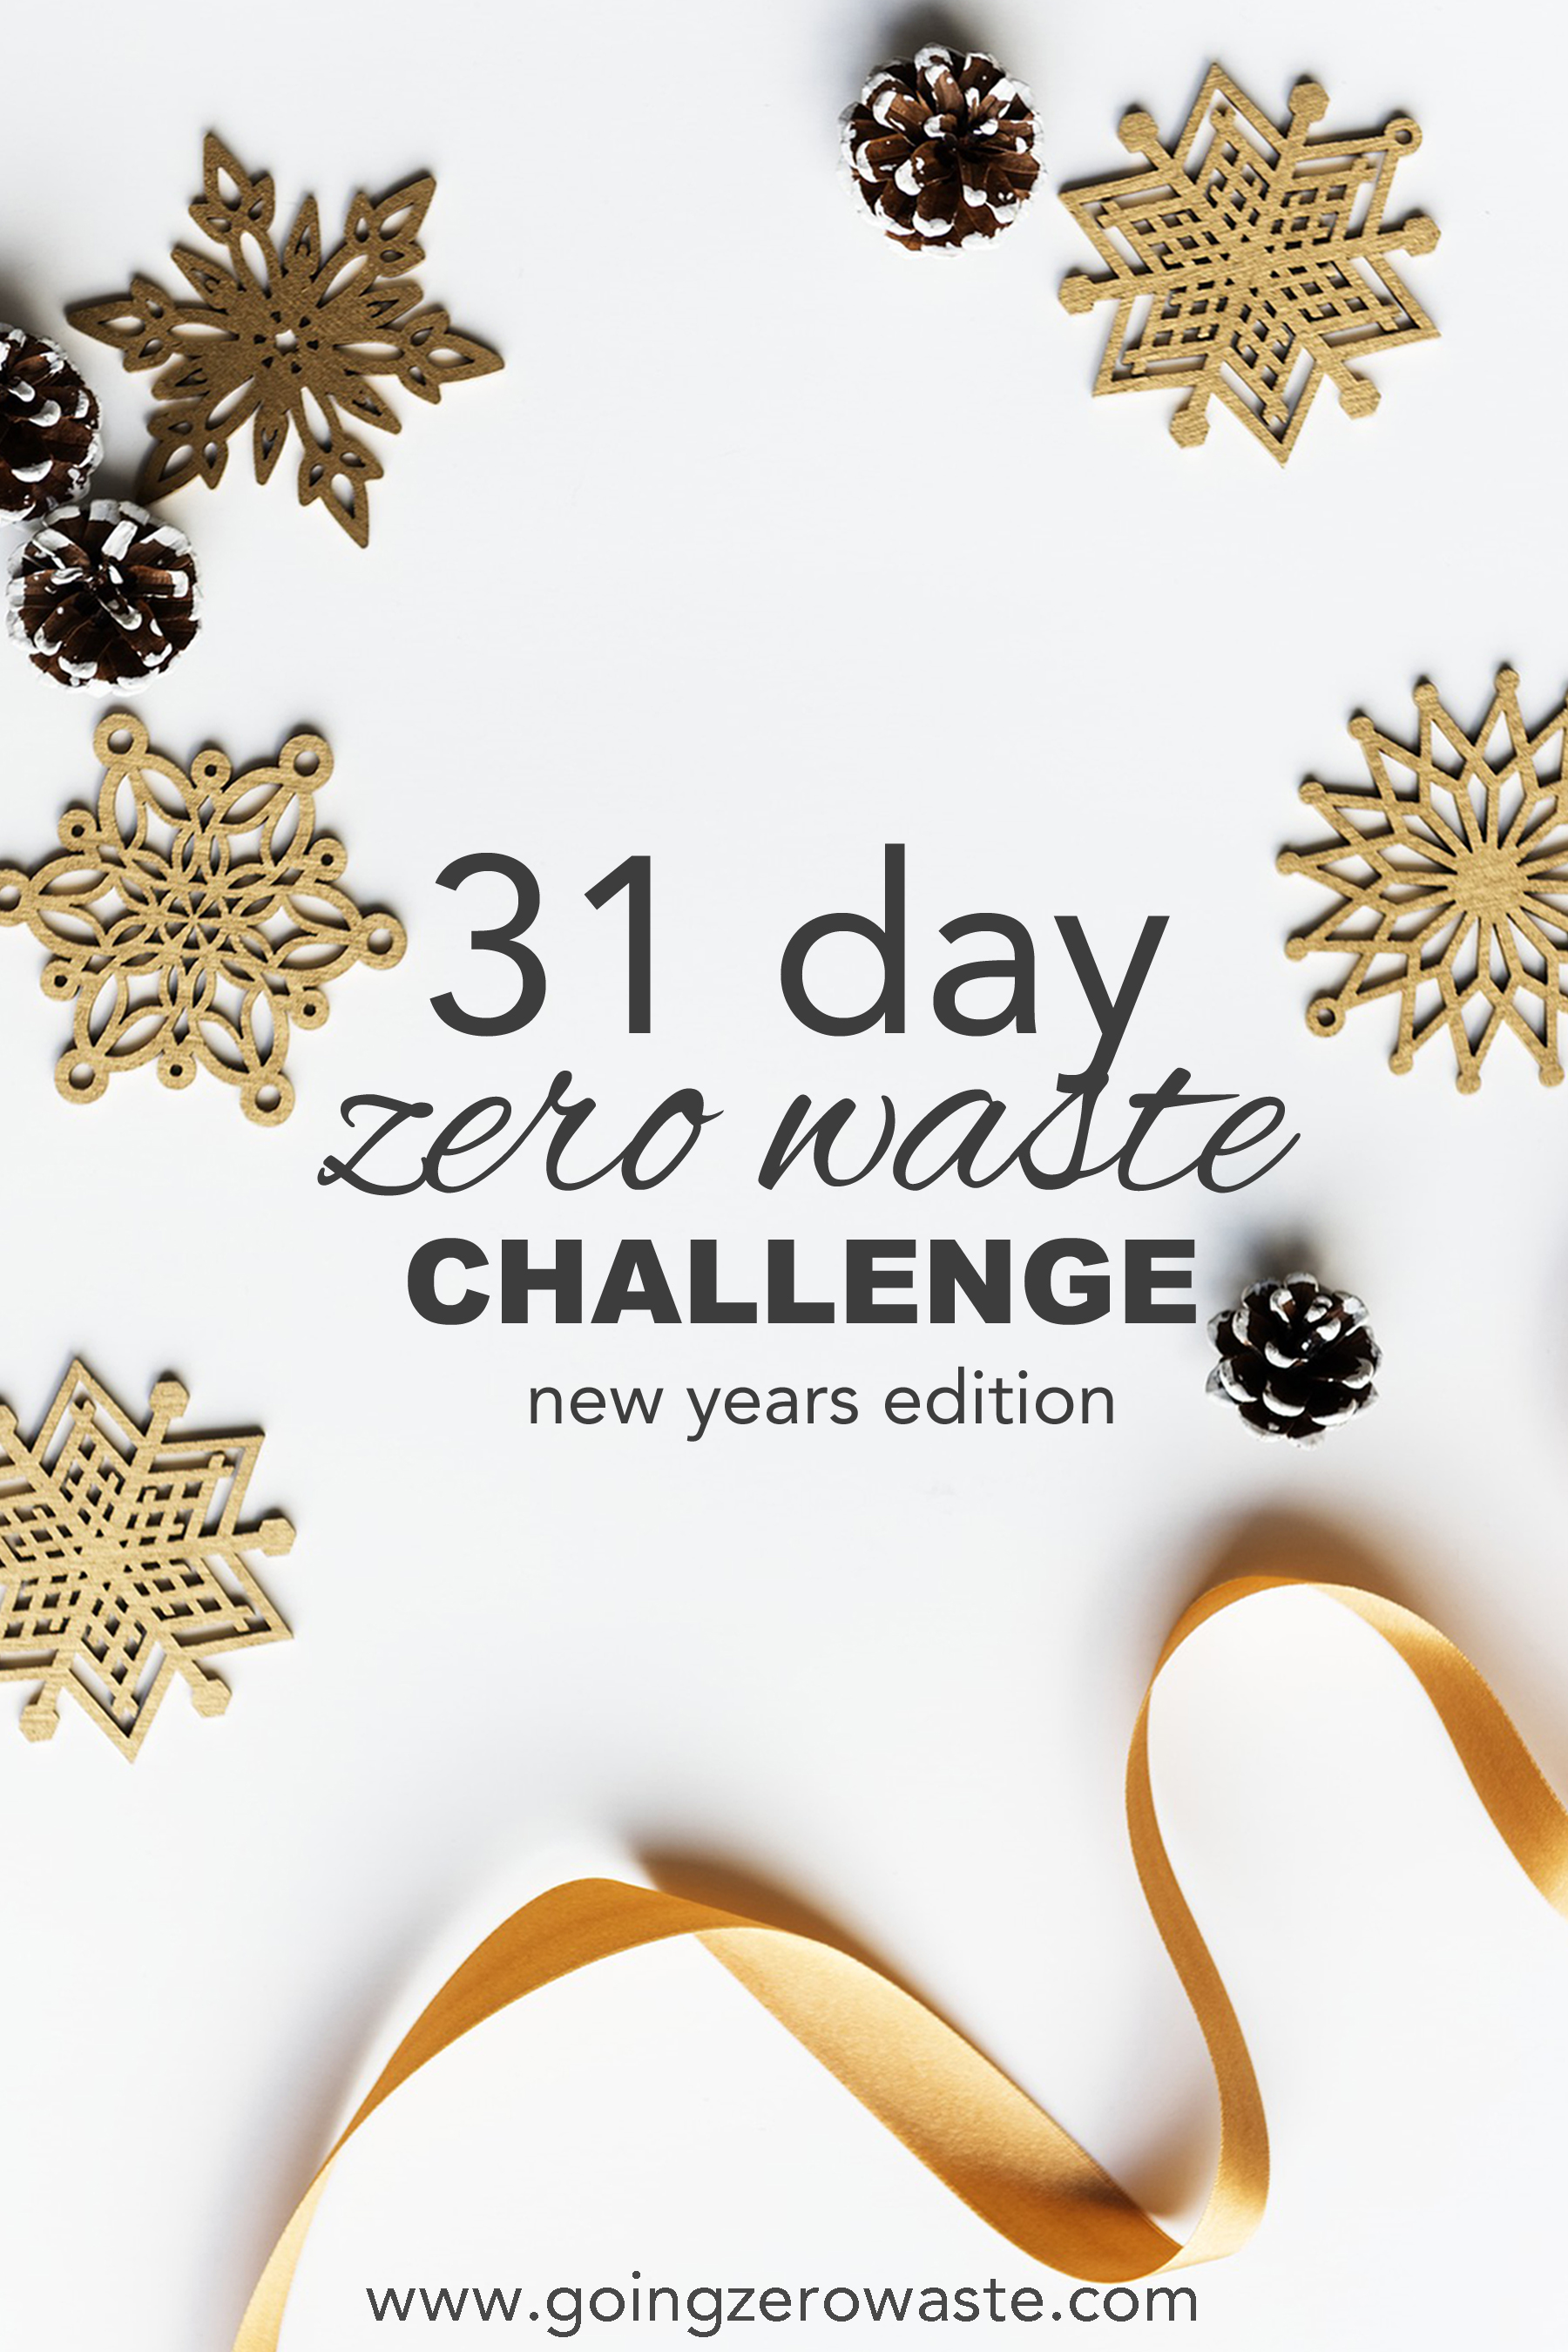 A 31 Day zero waste challenge to jump start your zero waste and plastic free new years resolution from www.goingzerowaste.com #zerowaste